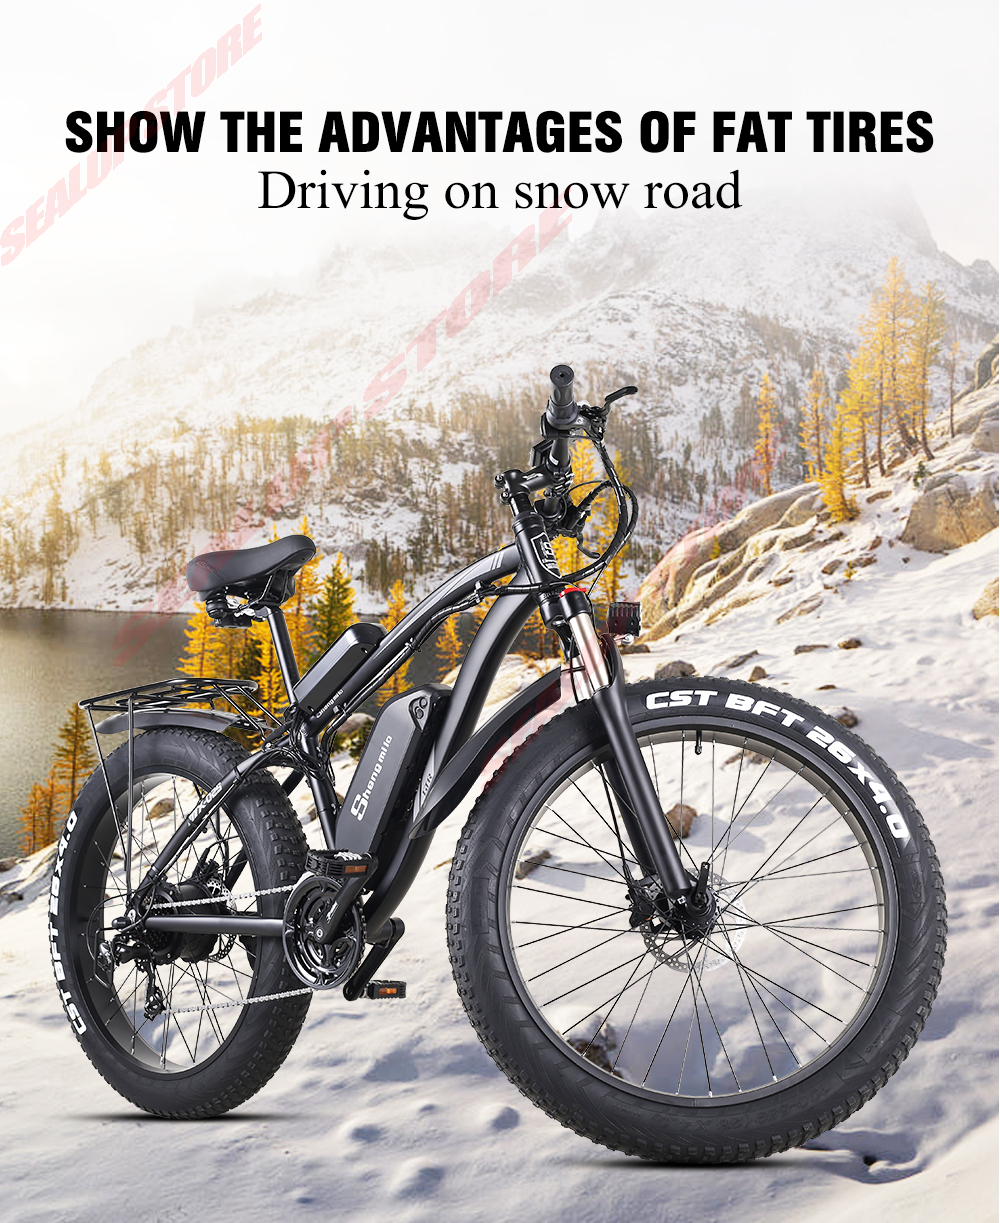 Electric Bike 1000W Snow Ebike 48V Bicycle Increase 26-inch Fat Tires Shengmilo Electric